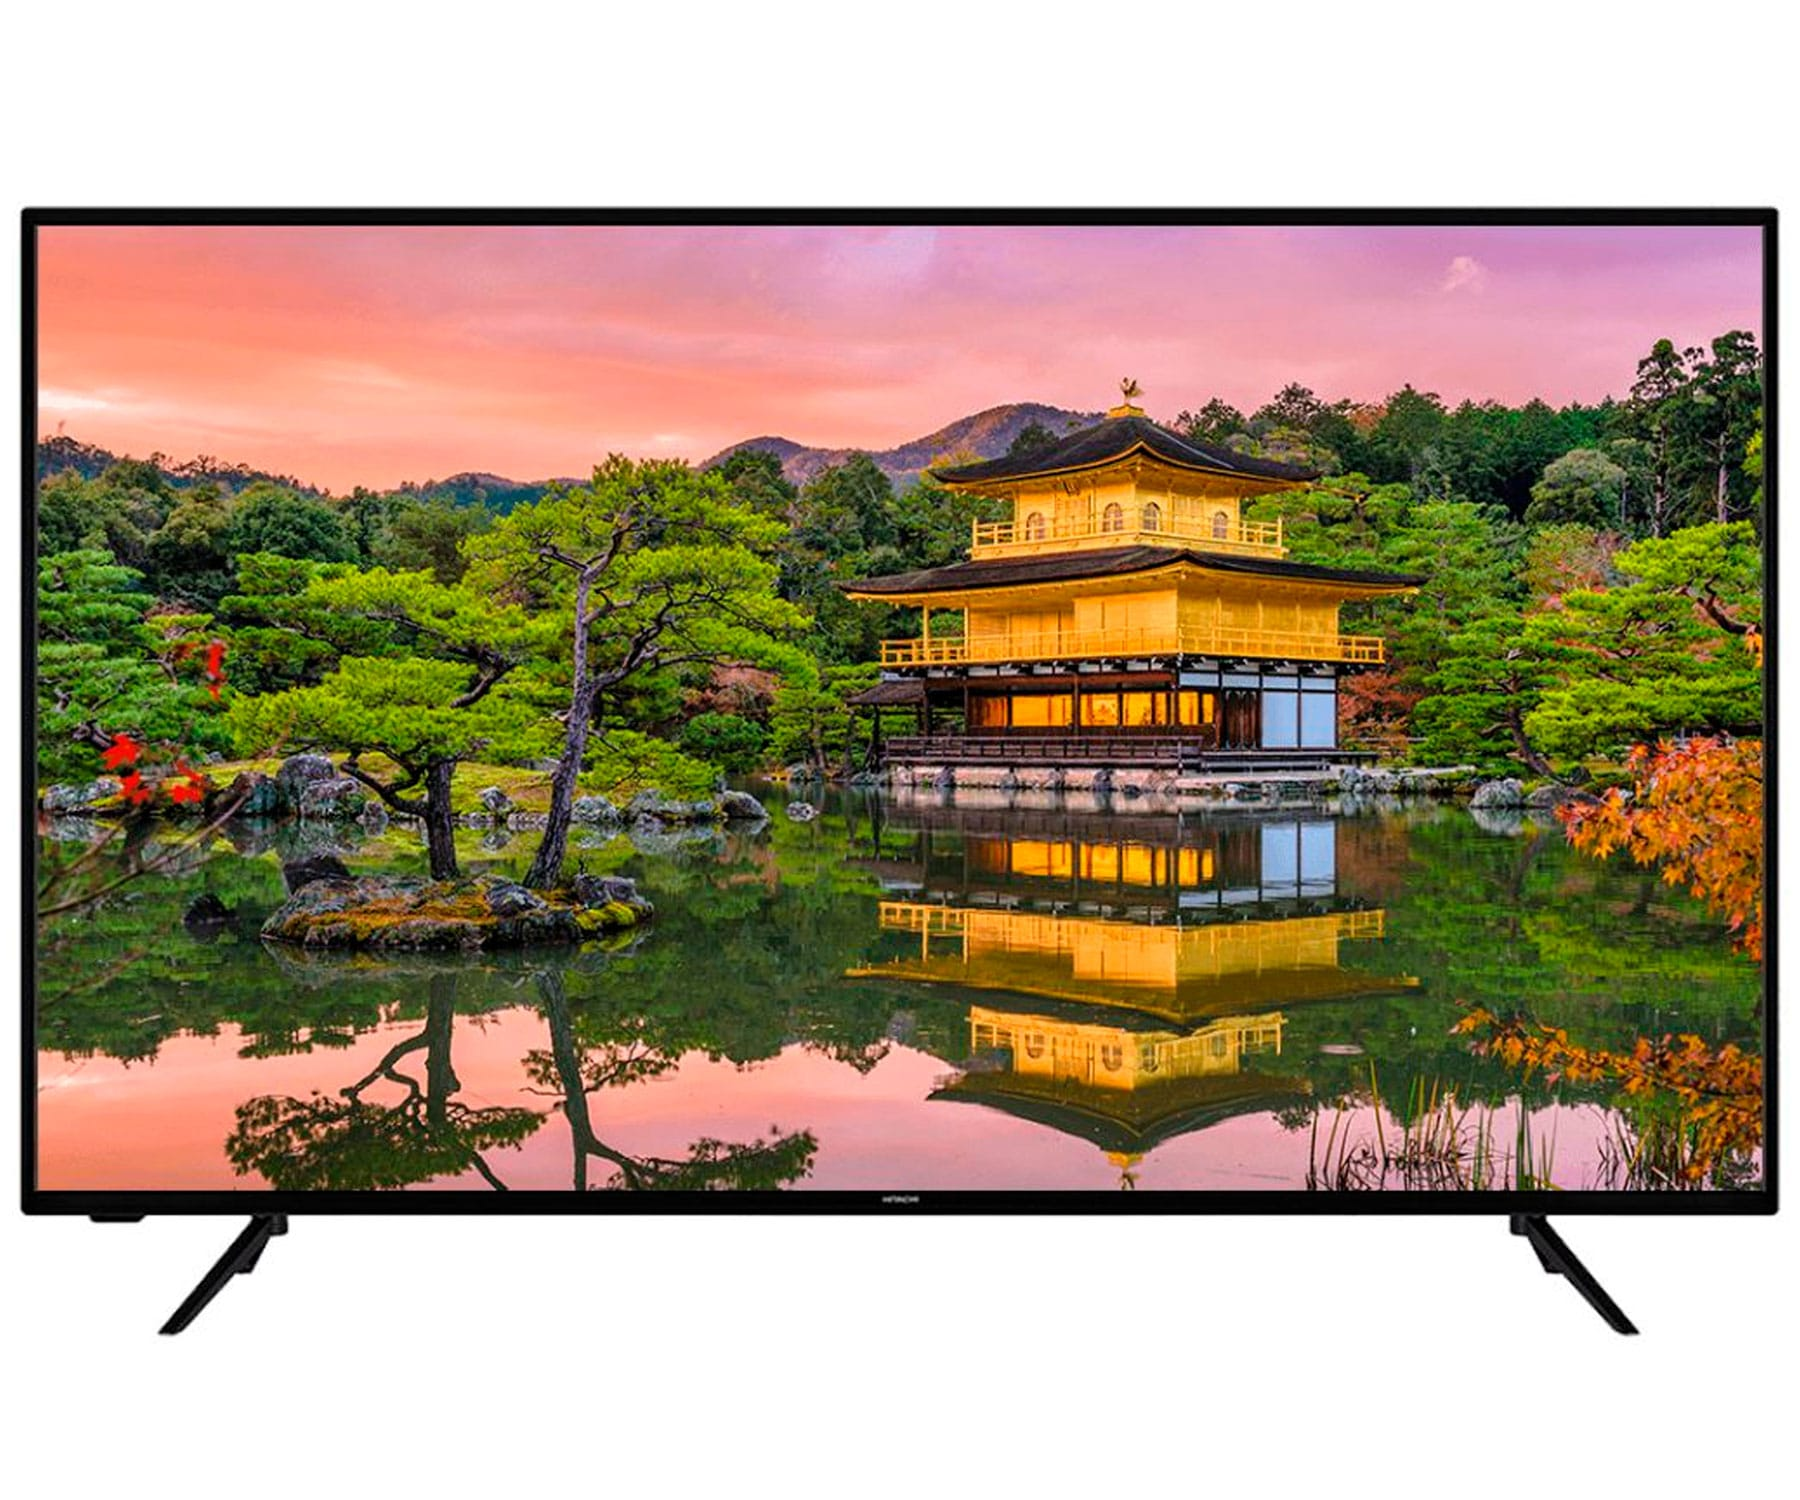 HITACHI 55HK5600 TELEVISOR 55'' LCD IPS DIRECT LED 4K SMART TV WIFI